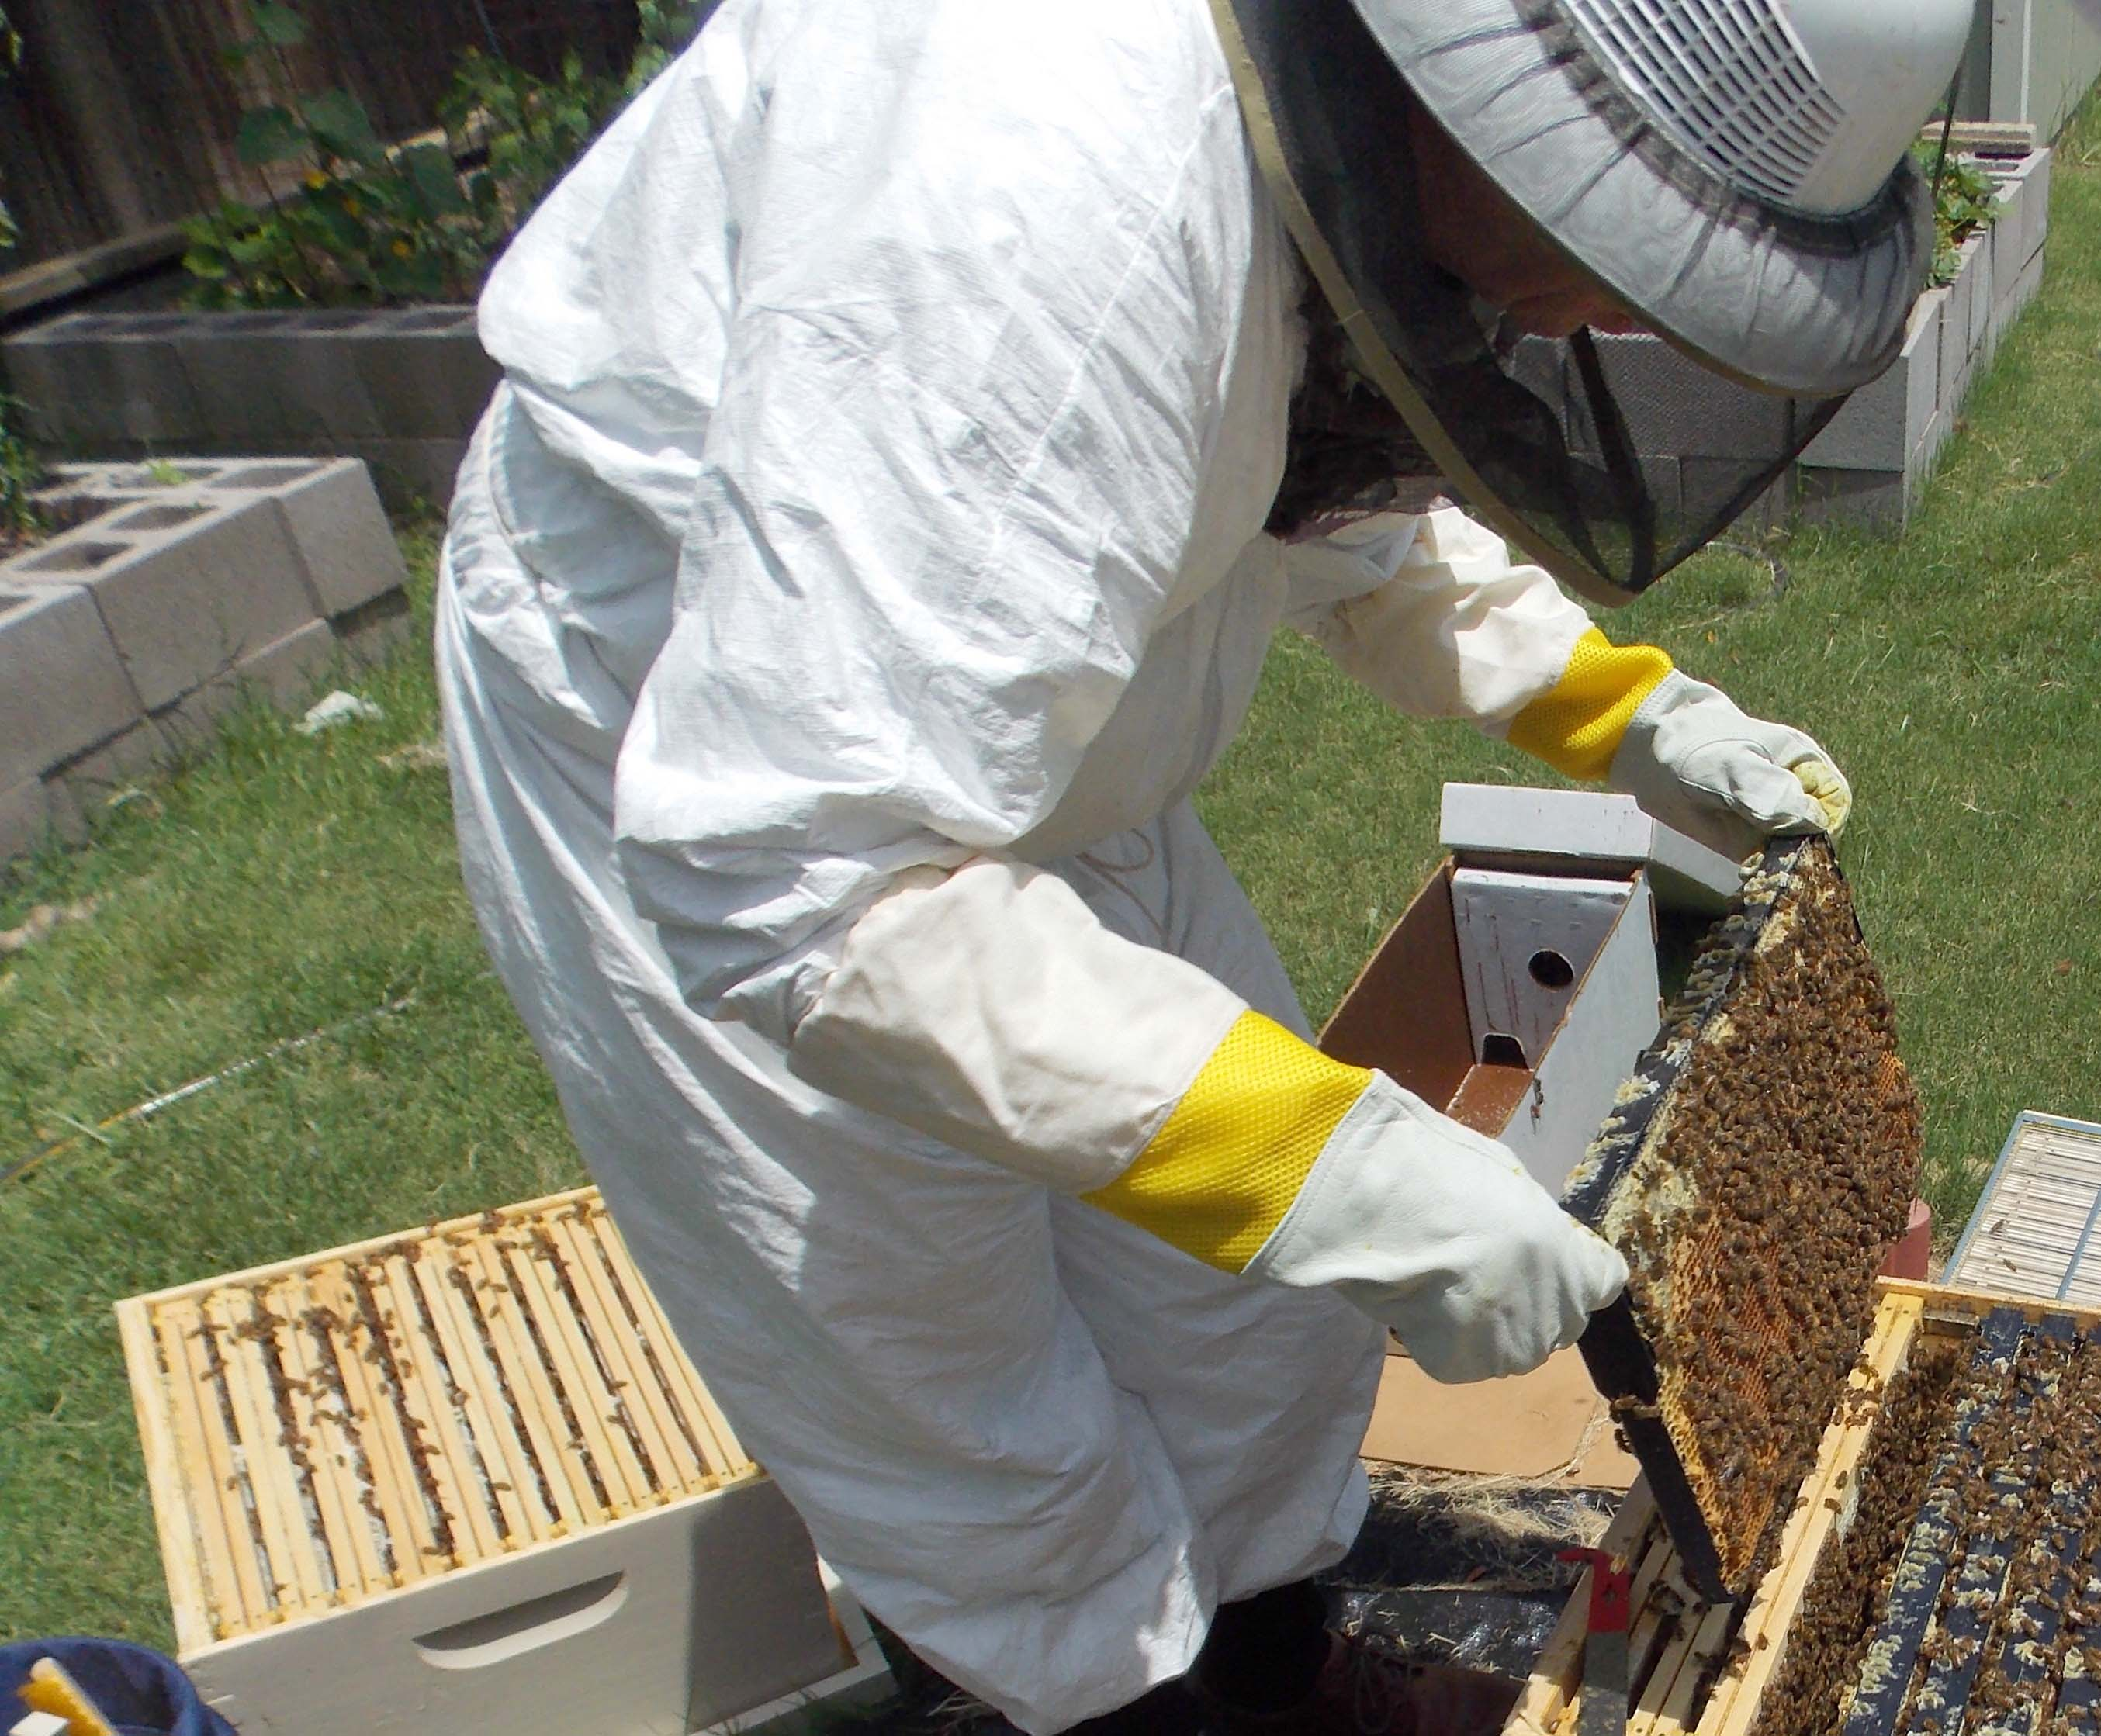 Beekeeper wearing protective clothing tends to her bees.